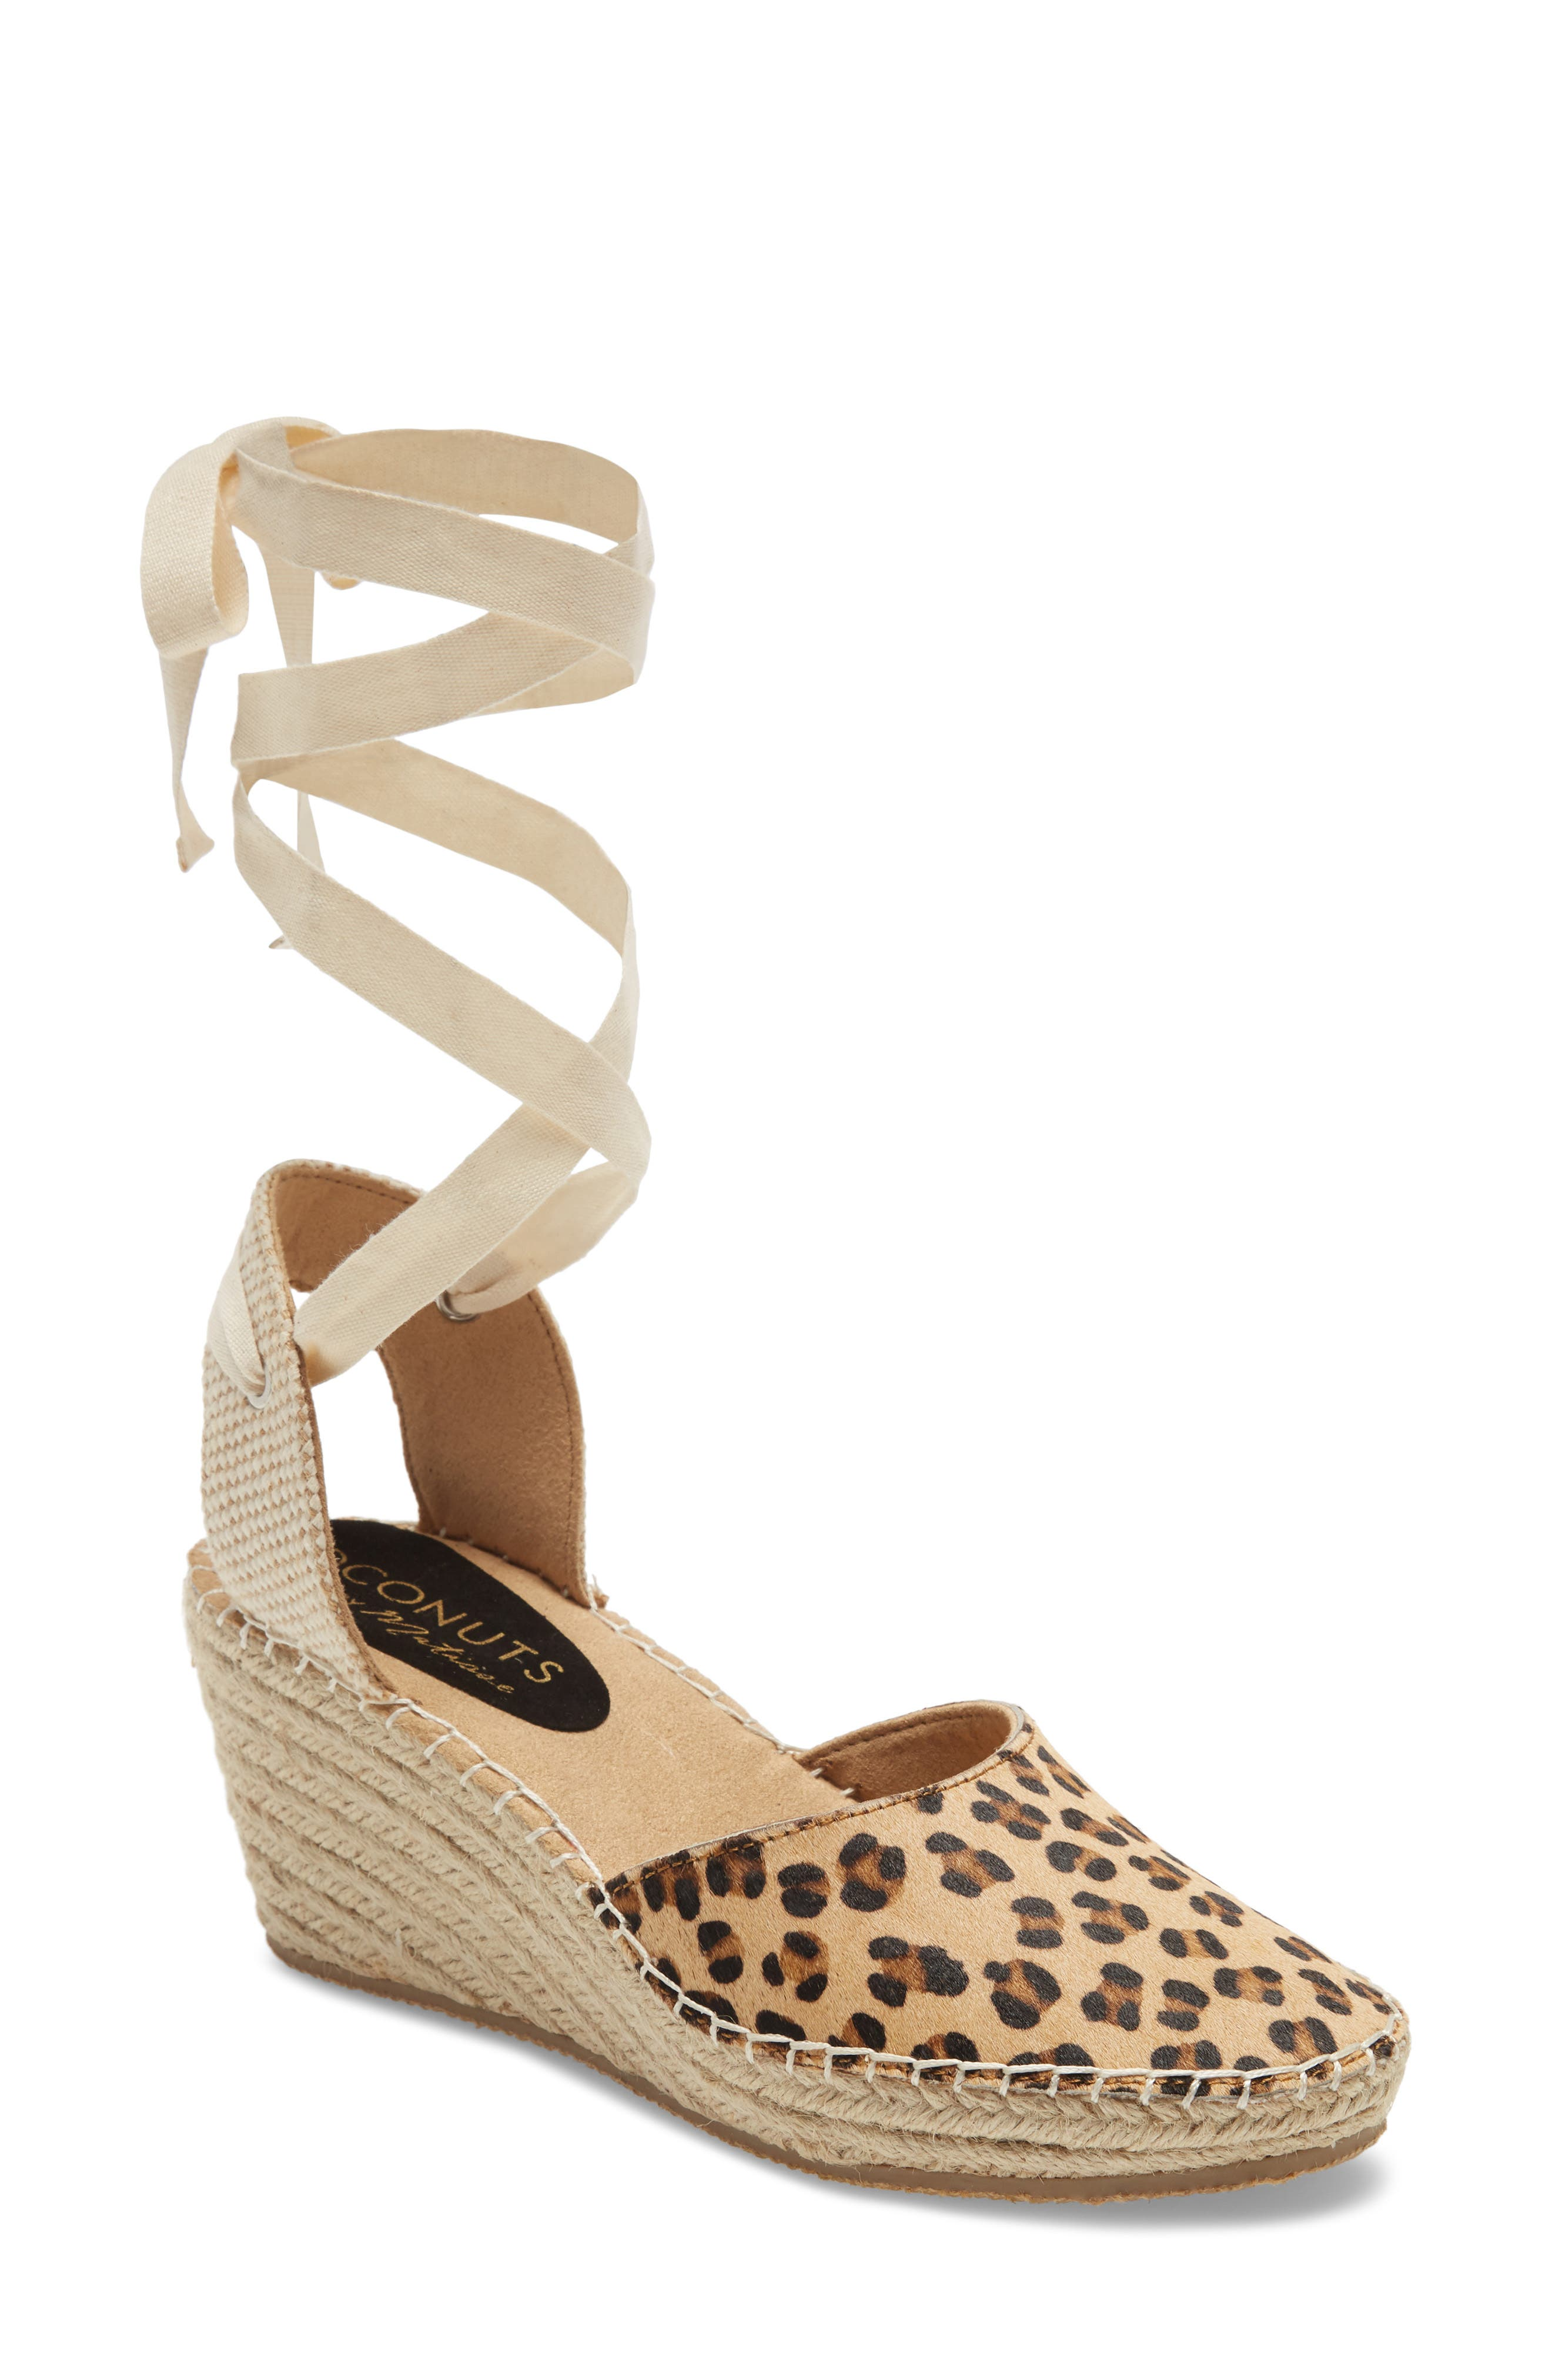 Firefly Lace-Up Wedge Sandal